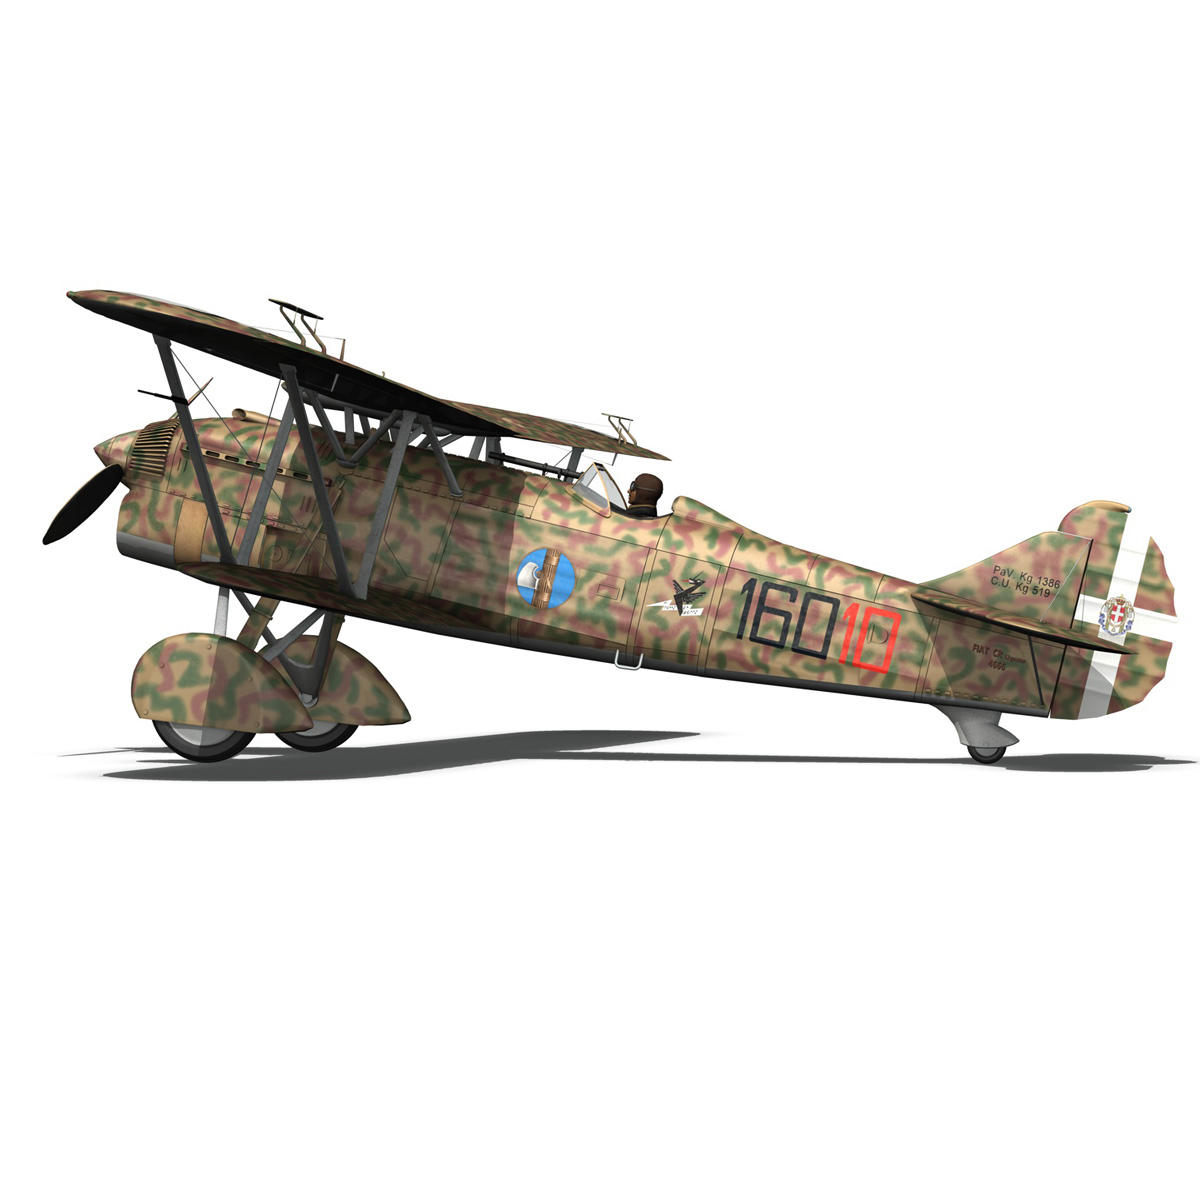 fiat cr.32 – italy airforce – 160 squadriglia 3d model fbx c4d lwo obj 268118